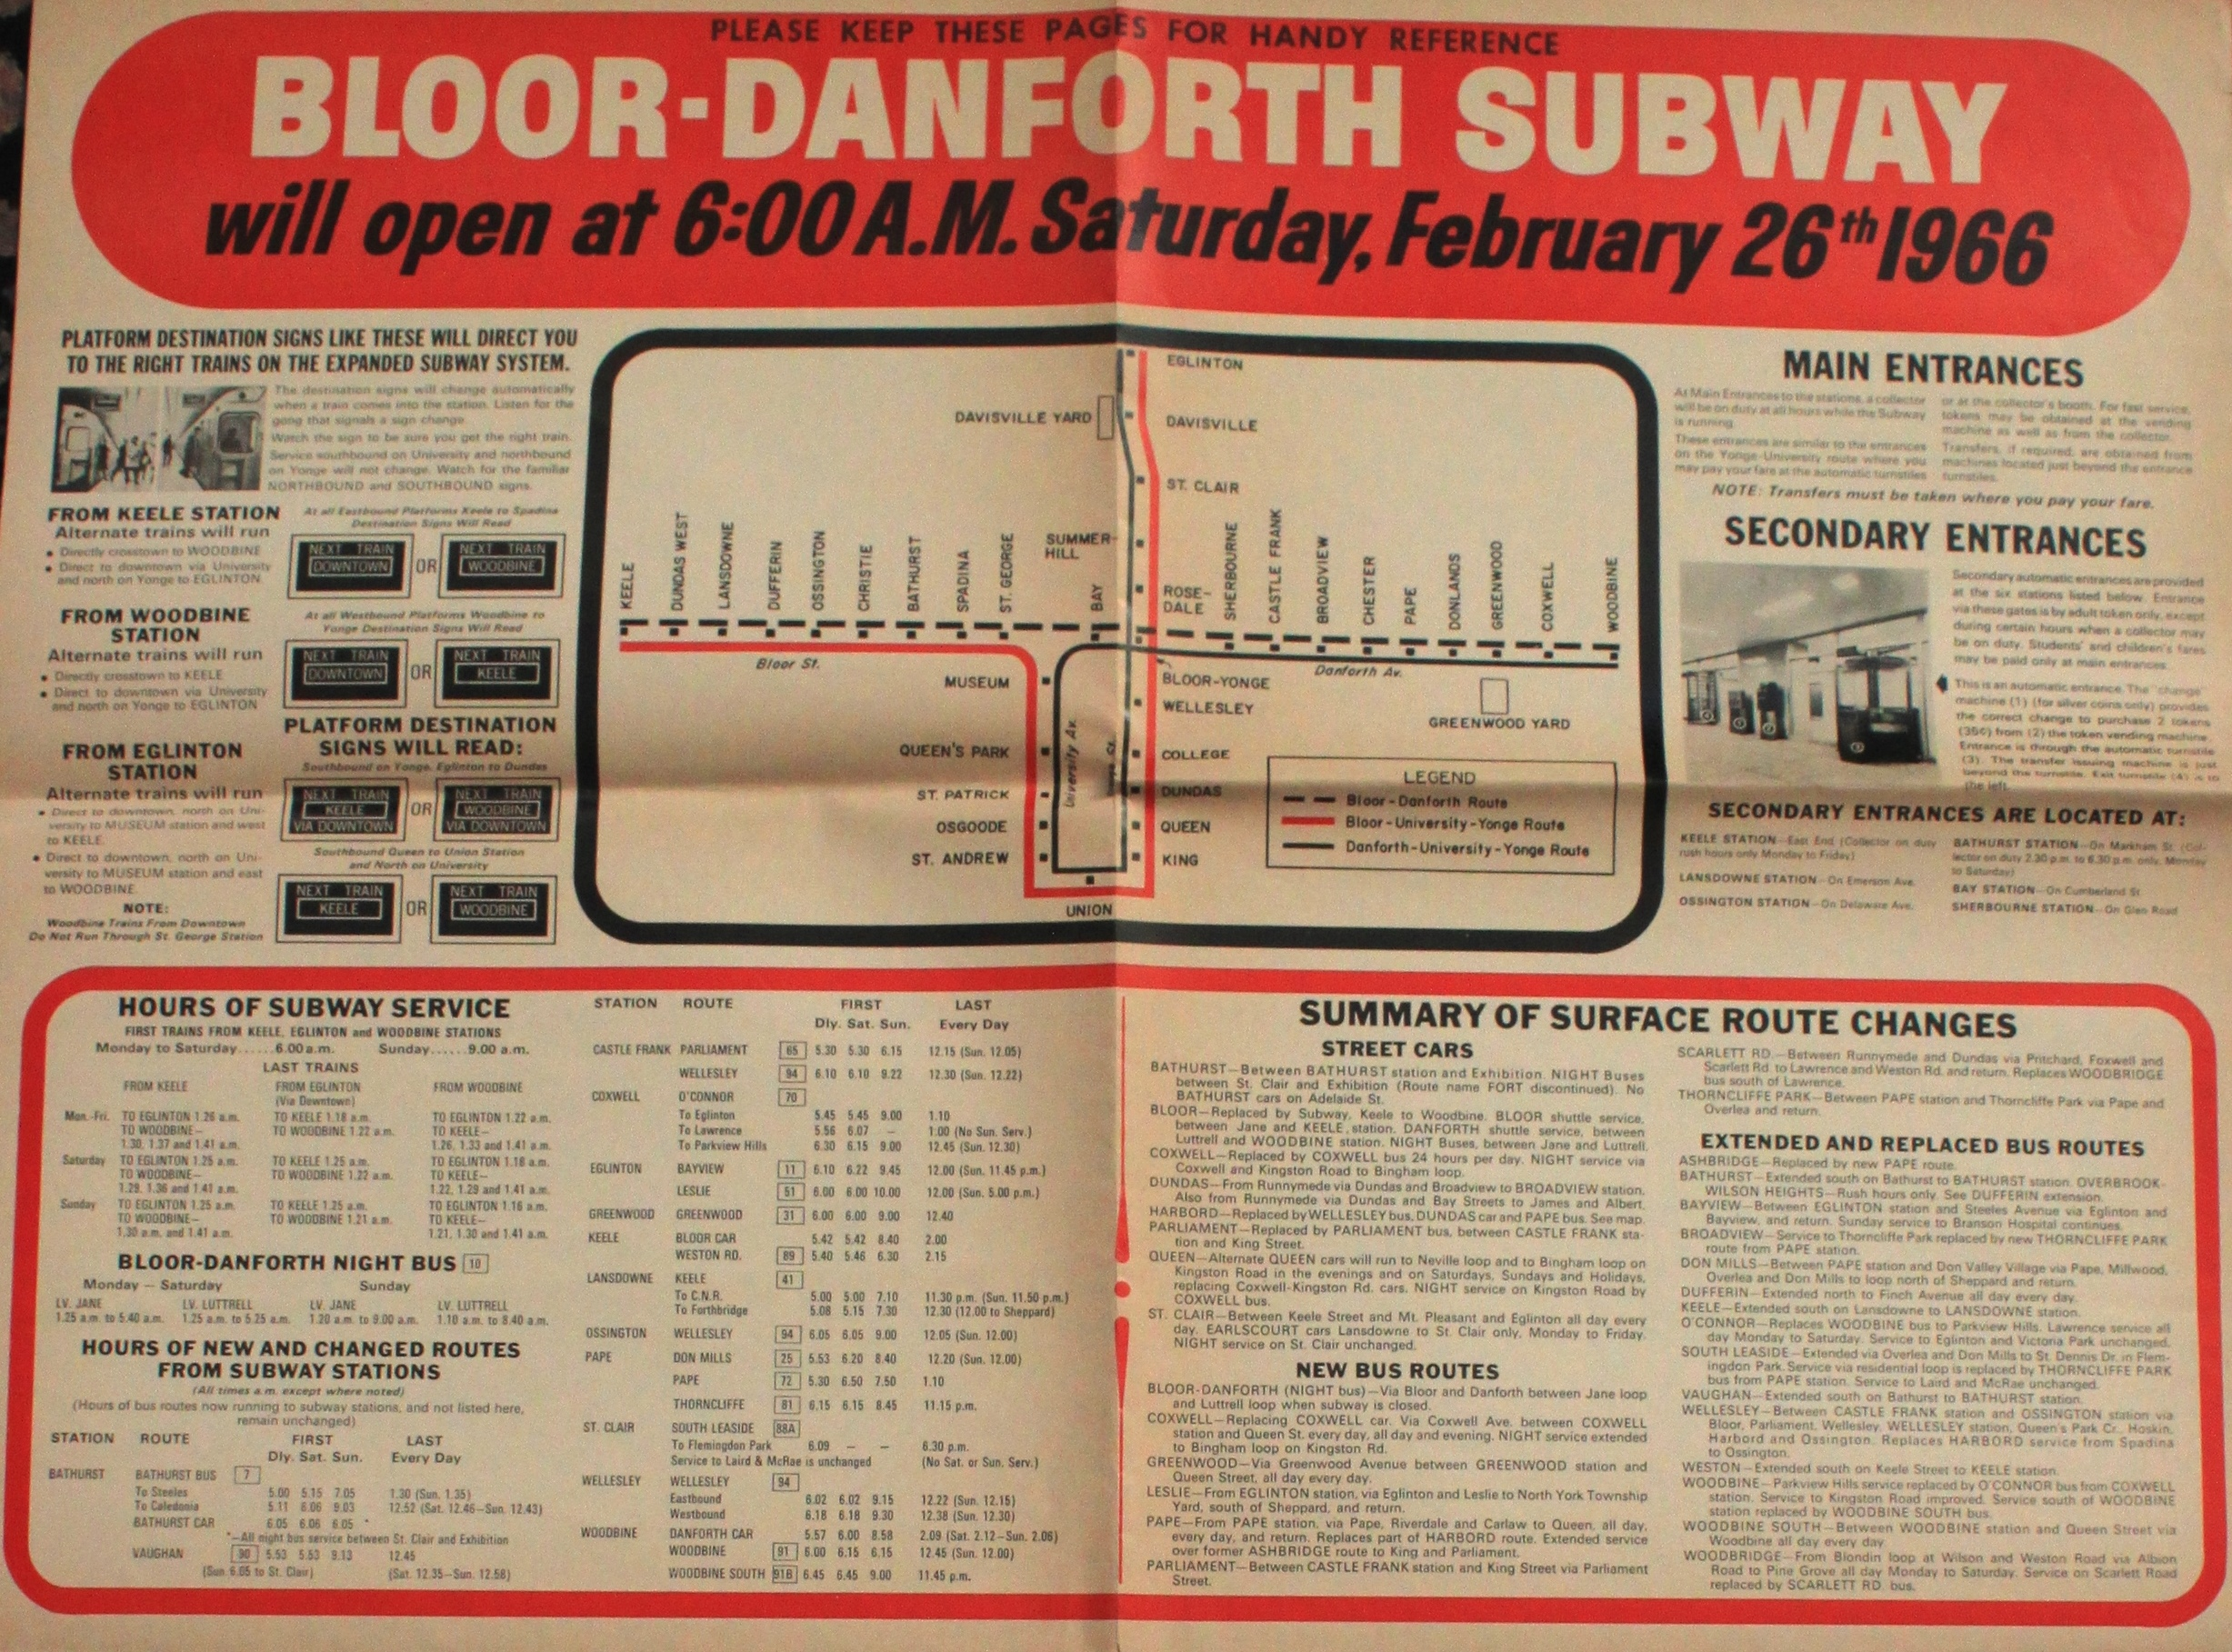 Bloor Danforth Subway Map.There S A New Subway On The Way 5 Steve Munro